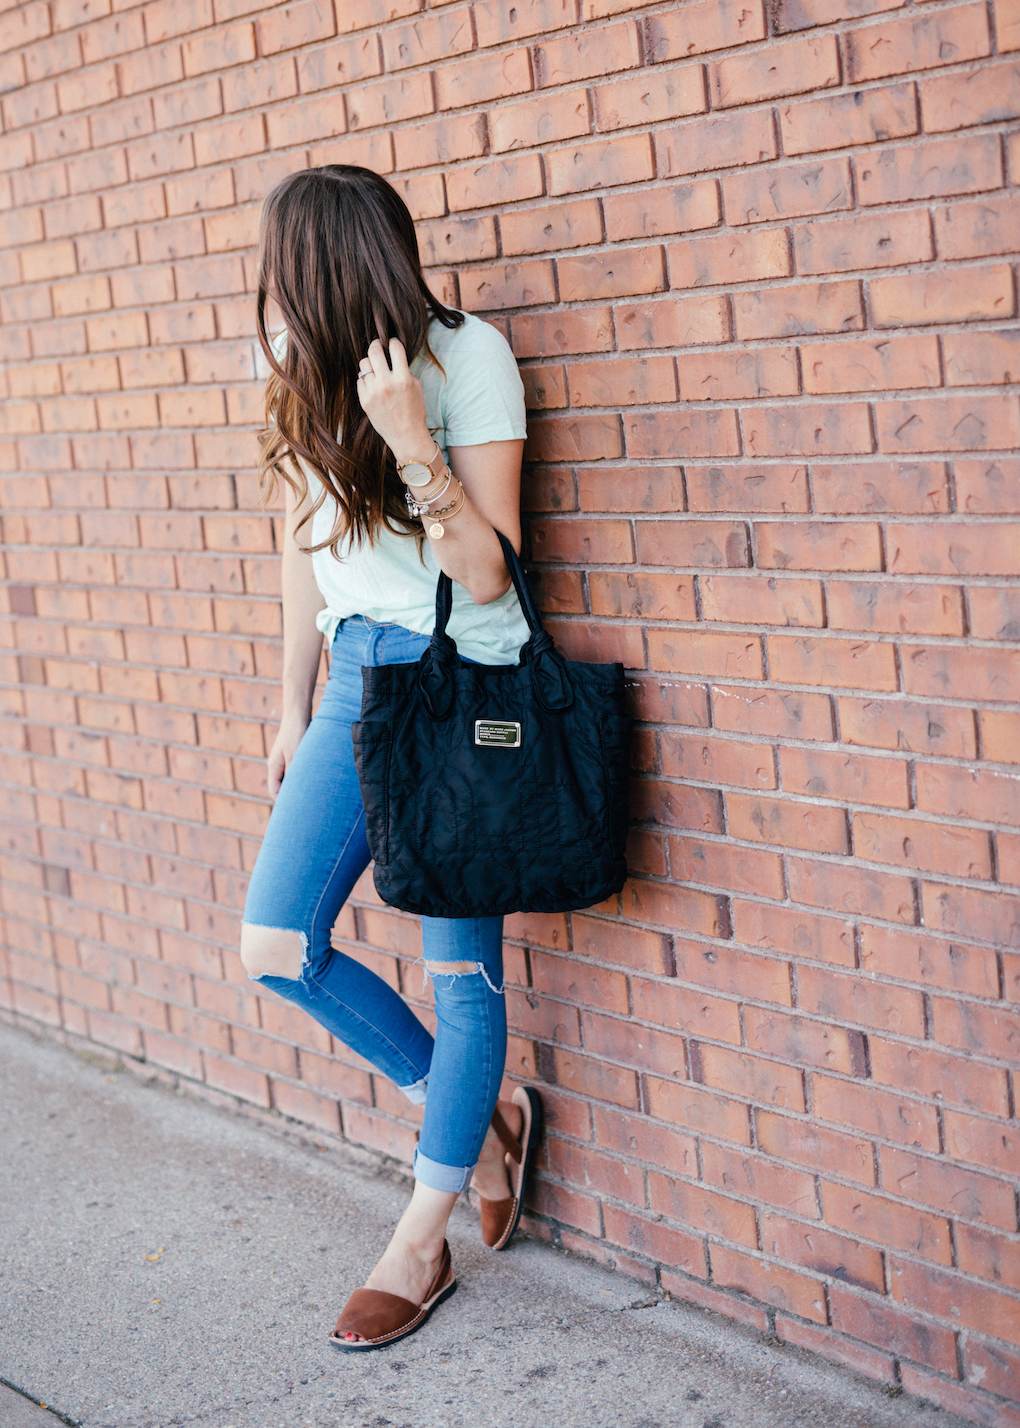 Girl with long brown curled hair wearing distressed skinny jeans, mint madewell tee, marc jacobs bag, and PONS shoes